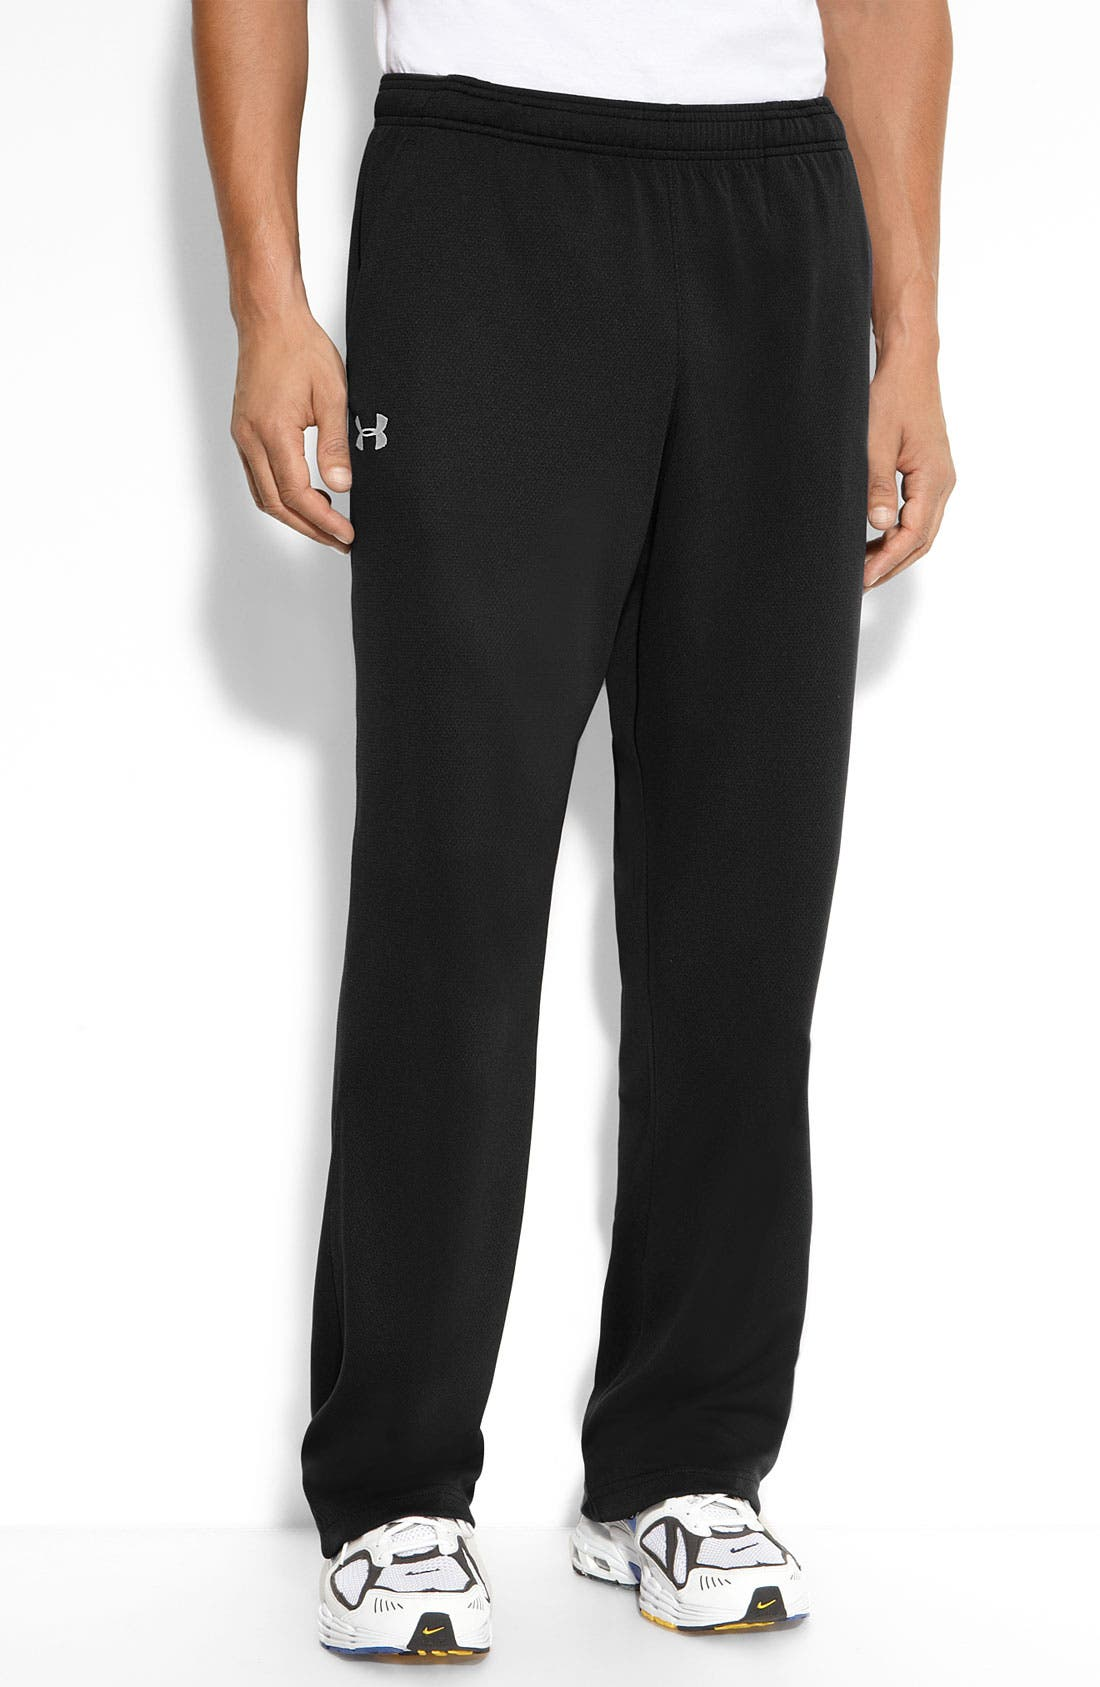 Alternate Image 1 Selected - Under Armour 'Flex' AllSeasonGear® Mesh Pants